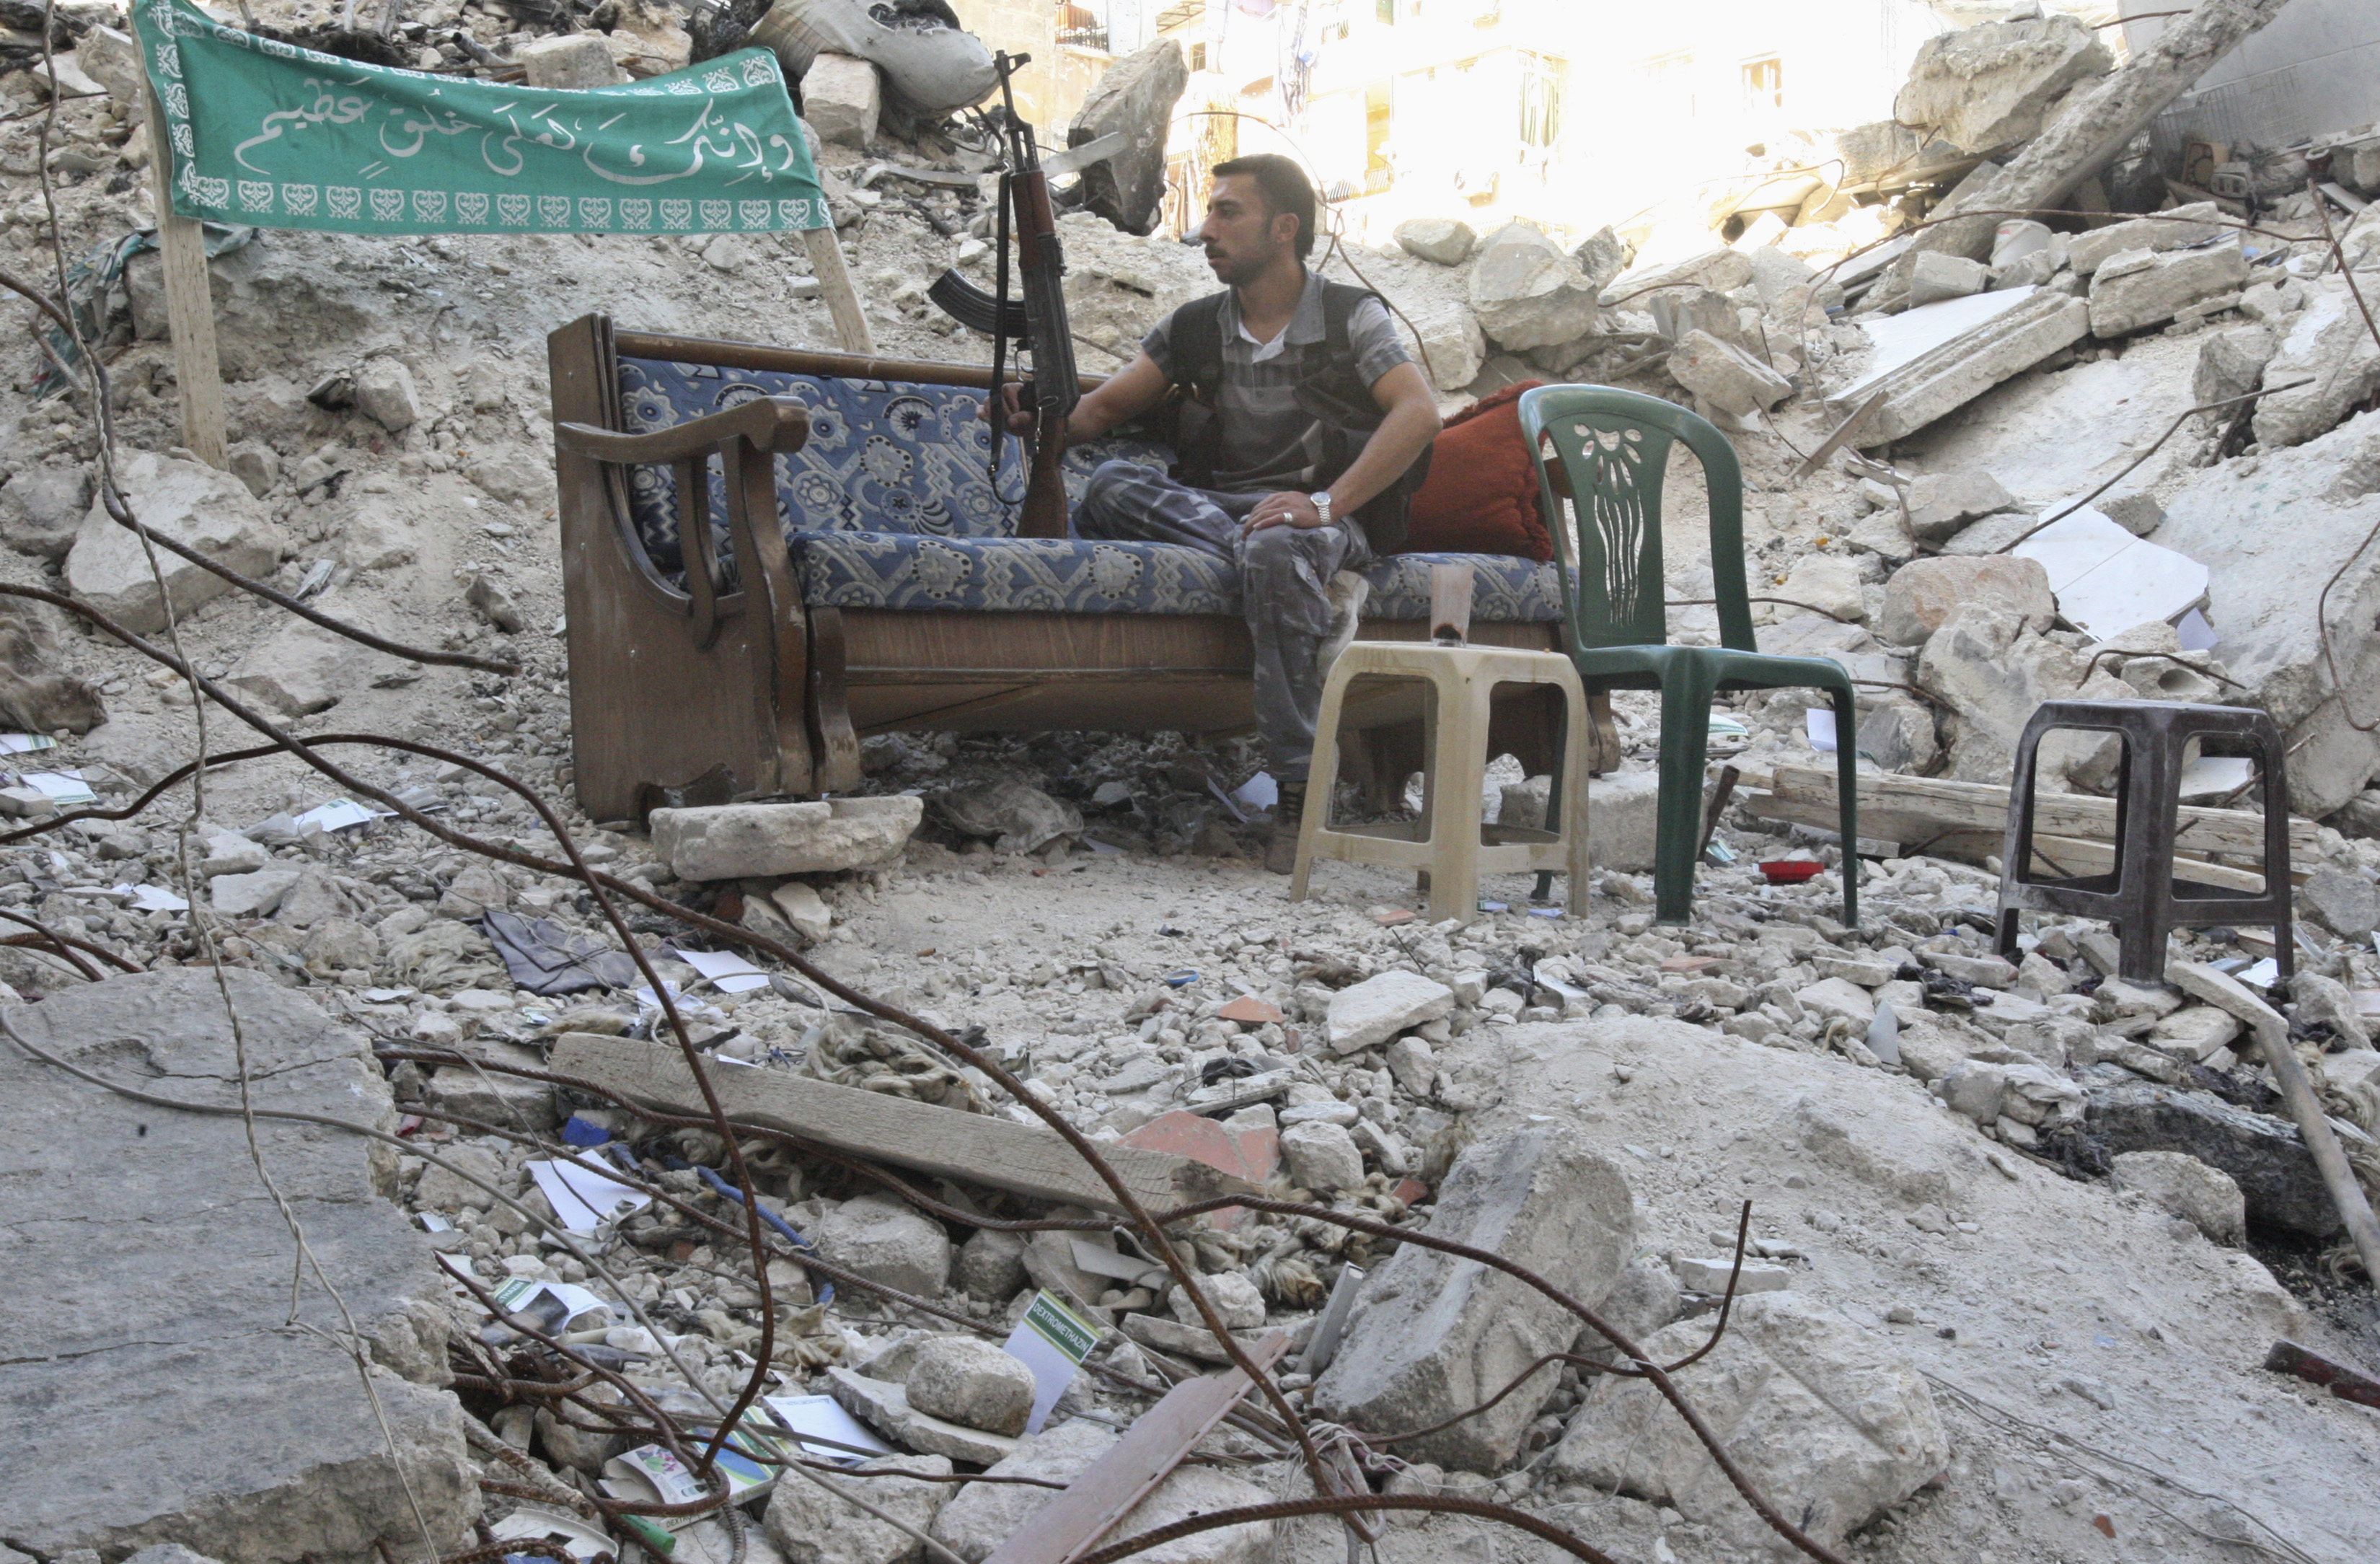 A Free Syrian Army fighter sits on a sofa along a street in Aleppo's Salaheddine neighbourhood July 30, 2013. Picture taken July 30, 2013. REUTERS/ Ammar Abdullah (SYRIA - Tags: CONFLICT) - RTX125S0